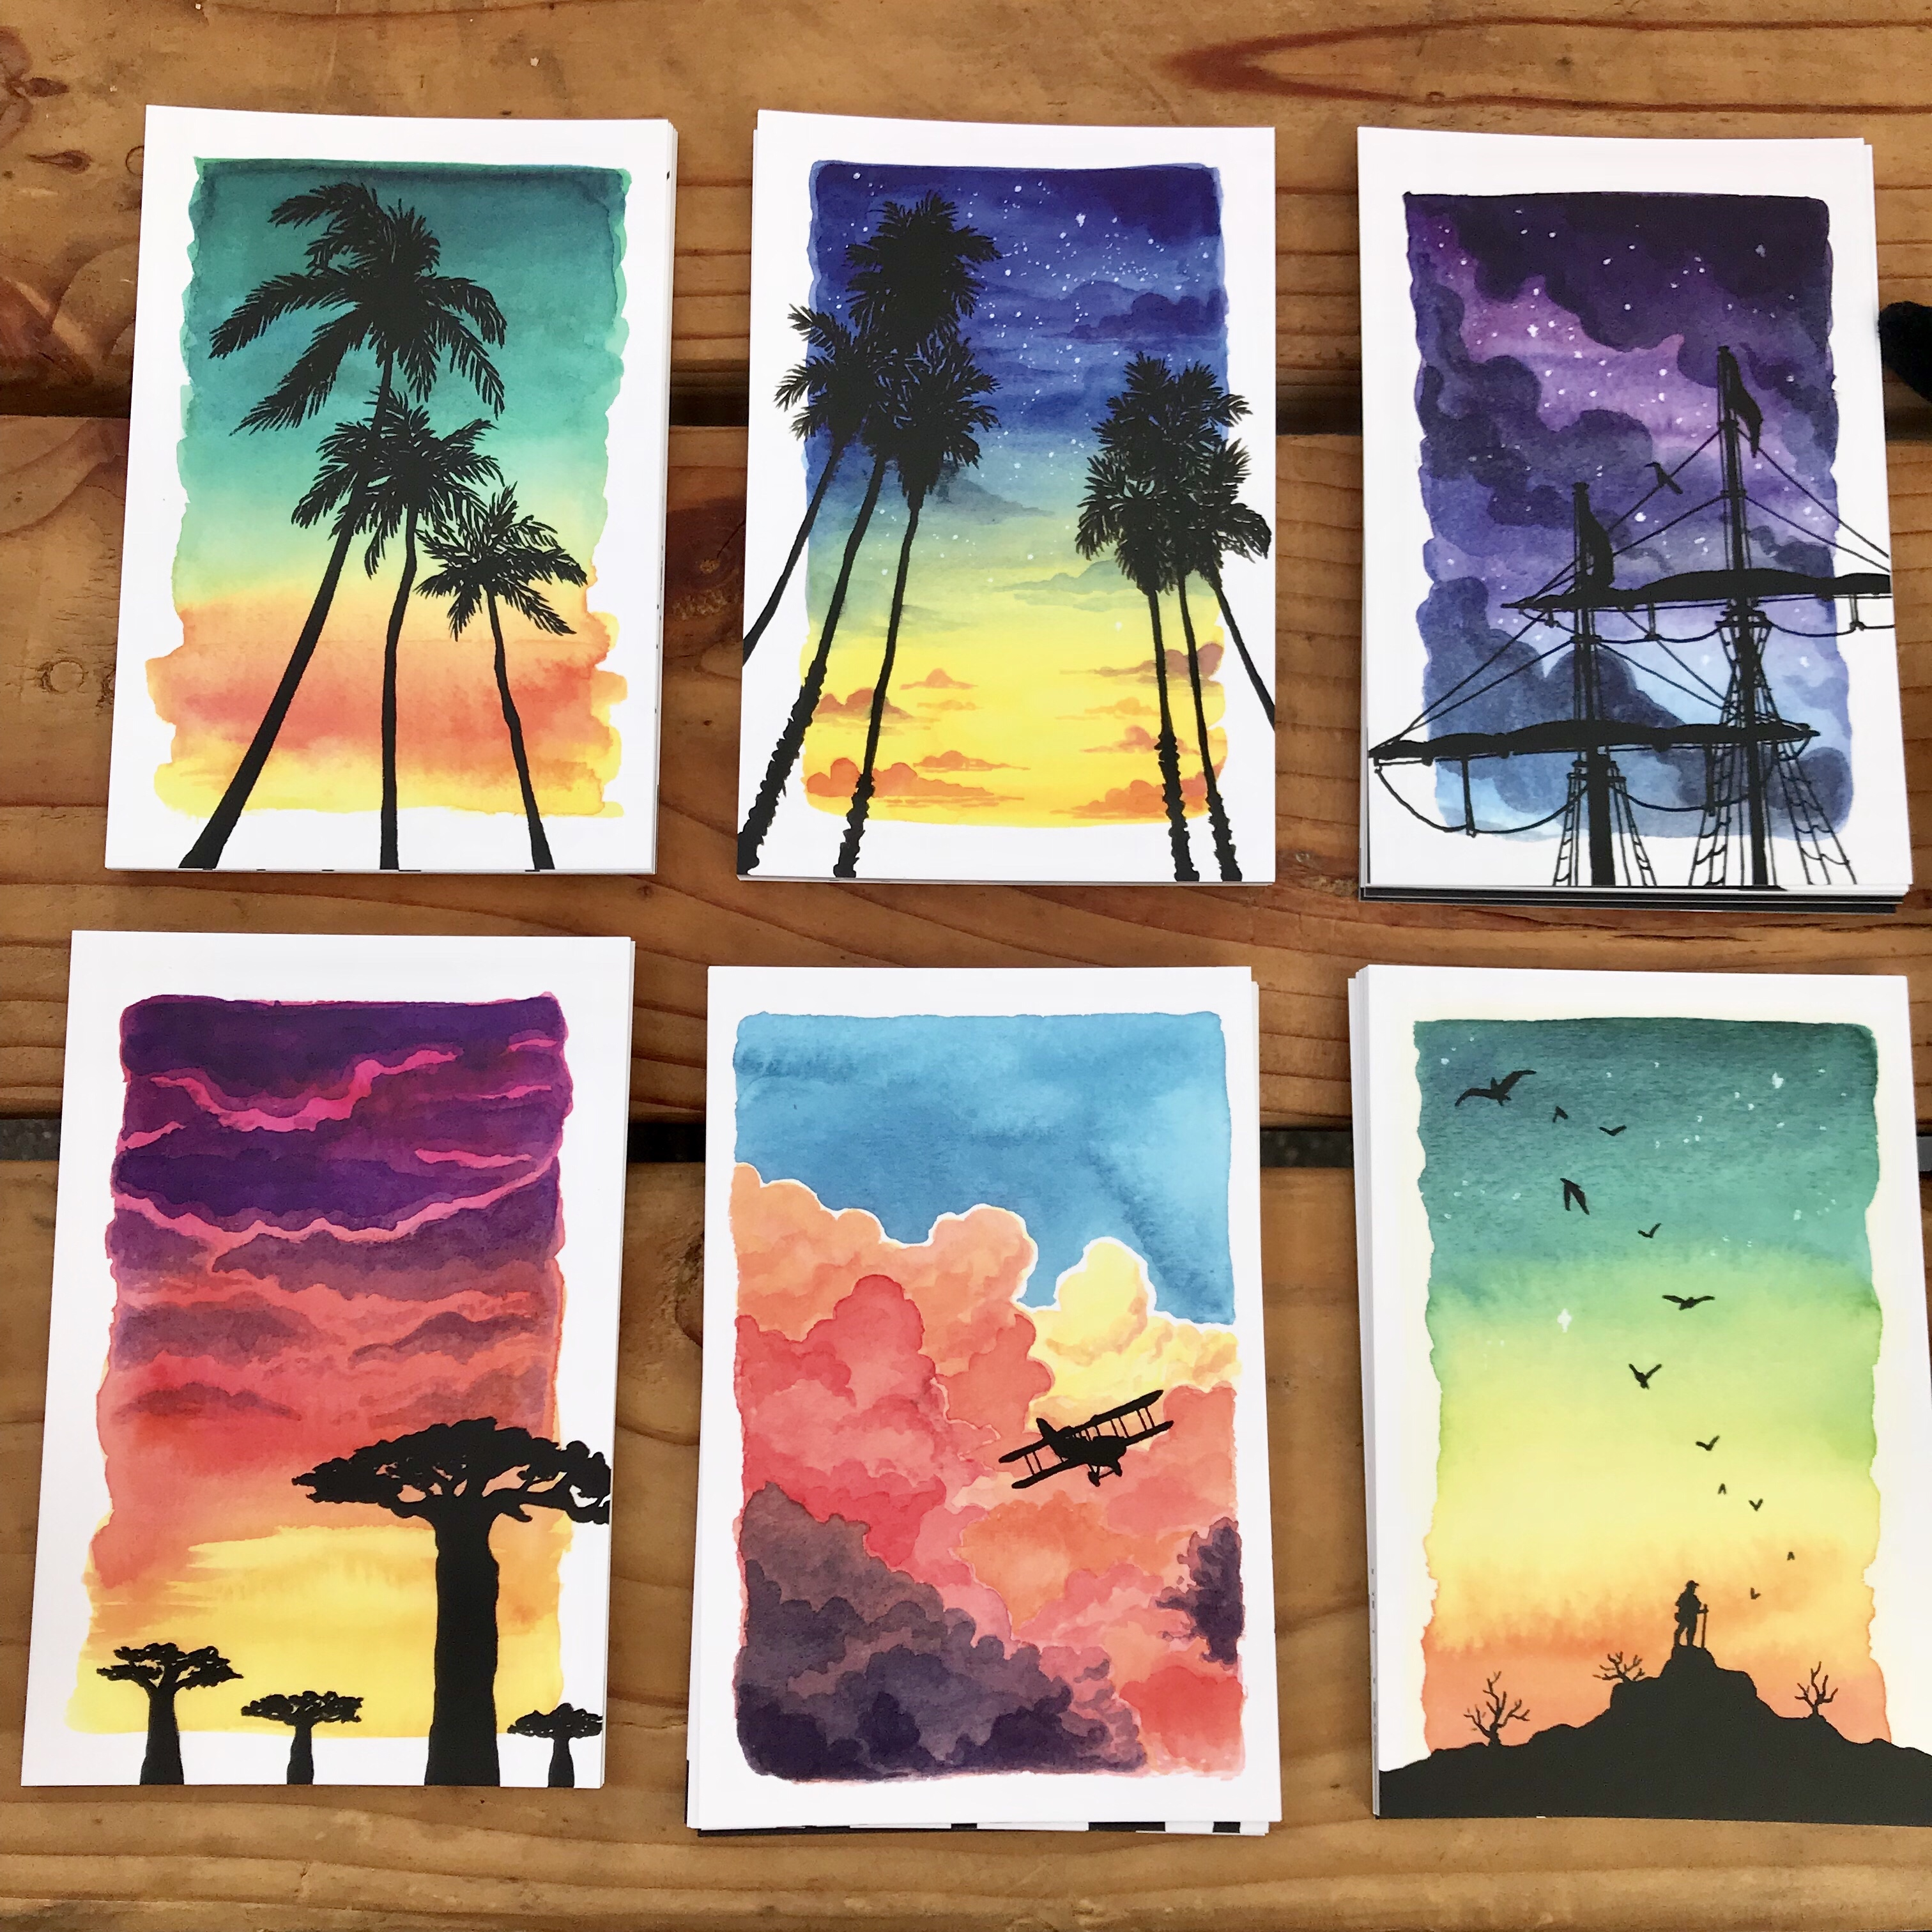 A selection of vibrant postcards featuring watercolor paintings of sunrises and sunsets with silhouettes of trees, tall ships, mountains, and other organic shapes in the foreground.